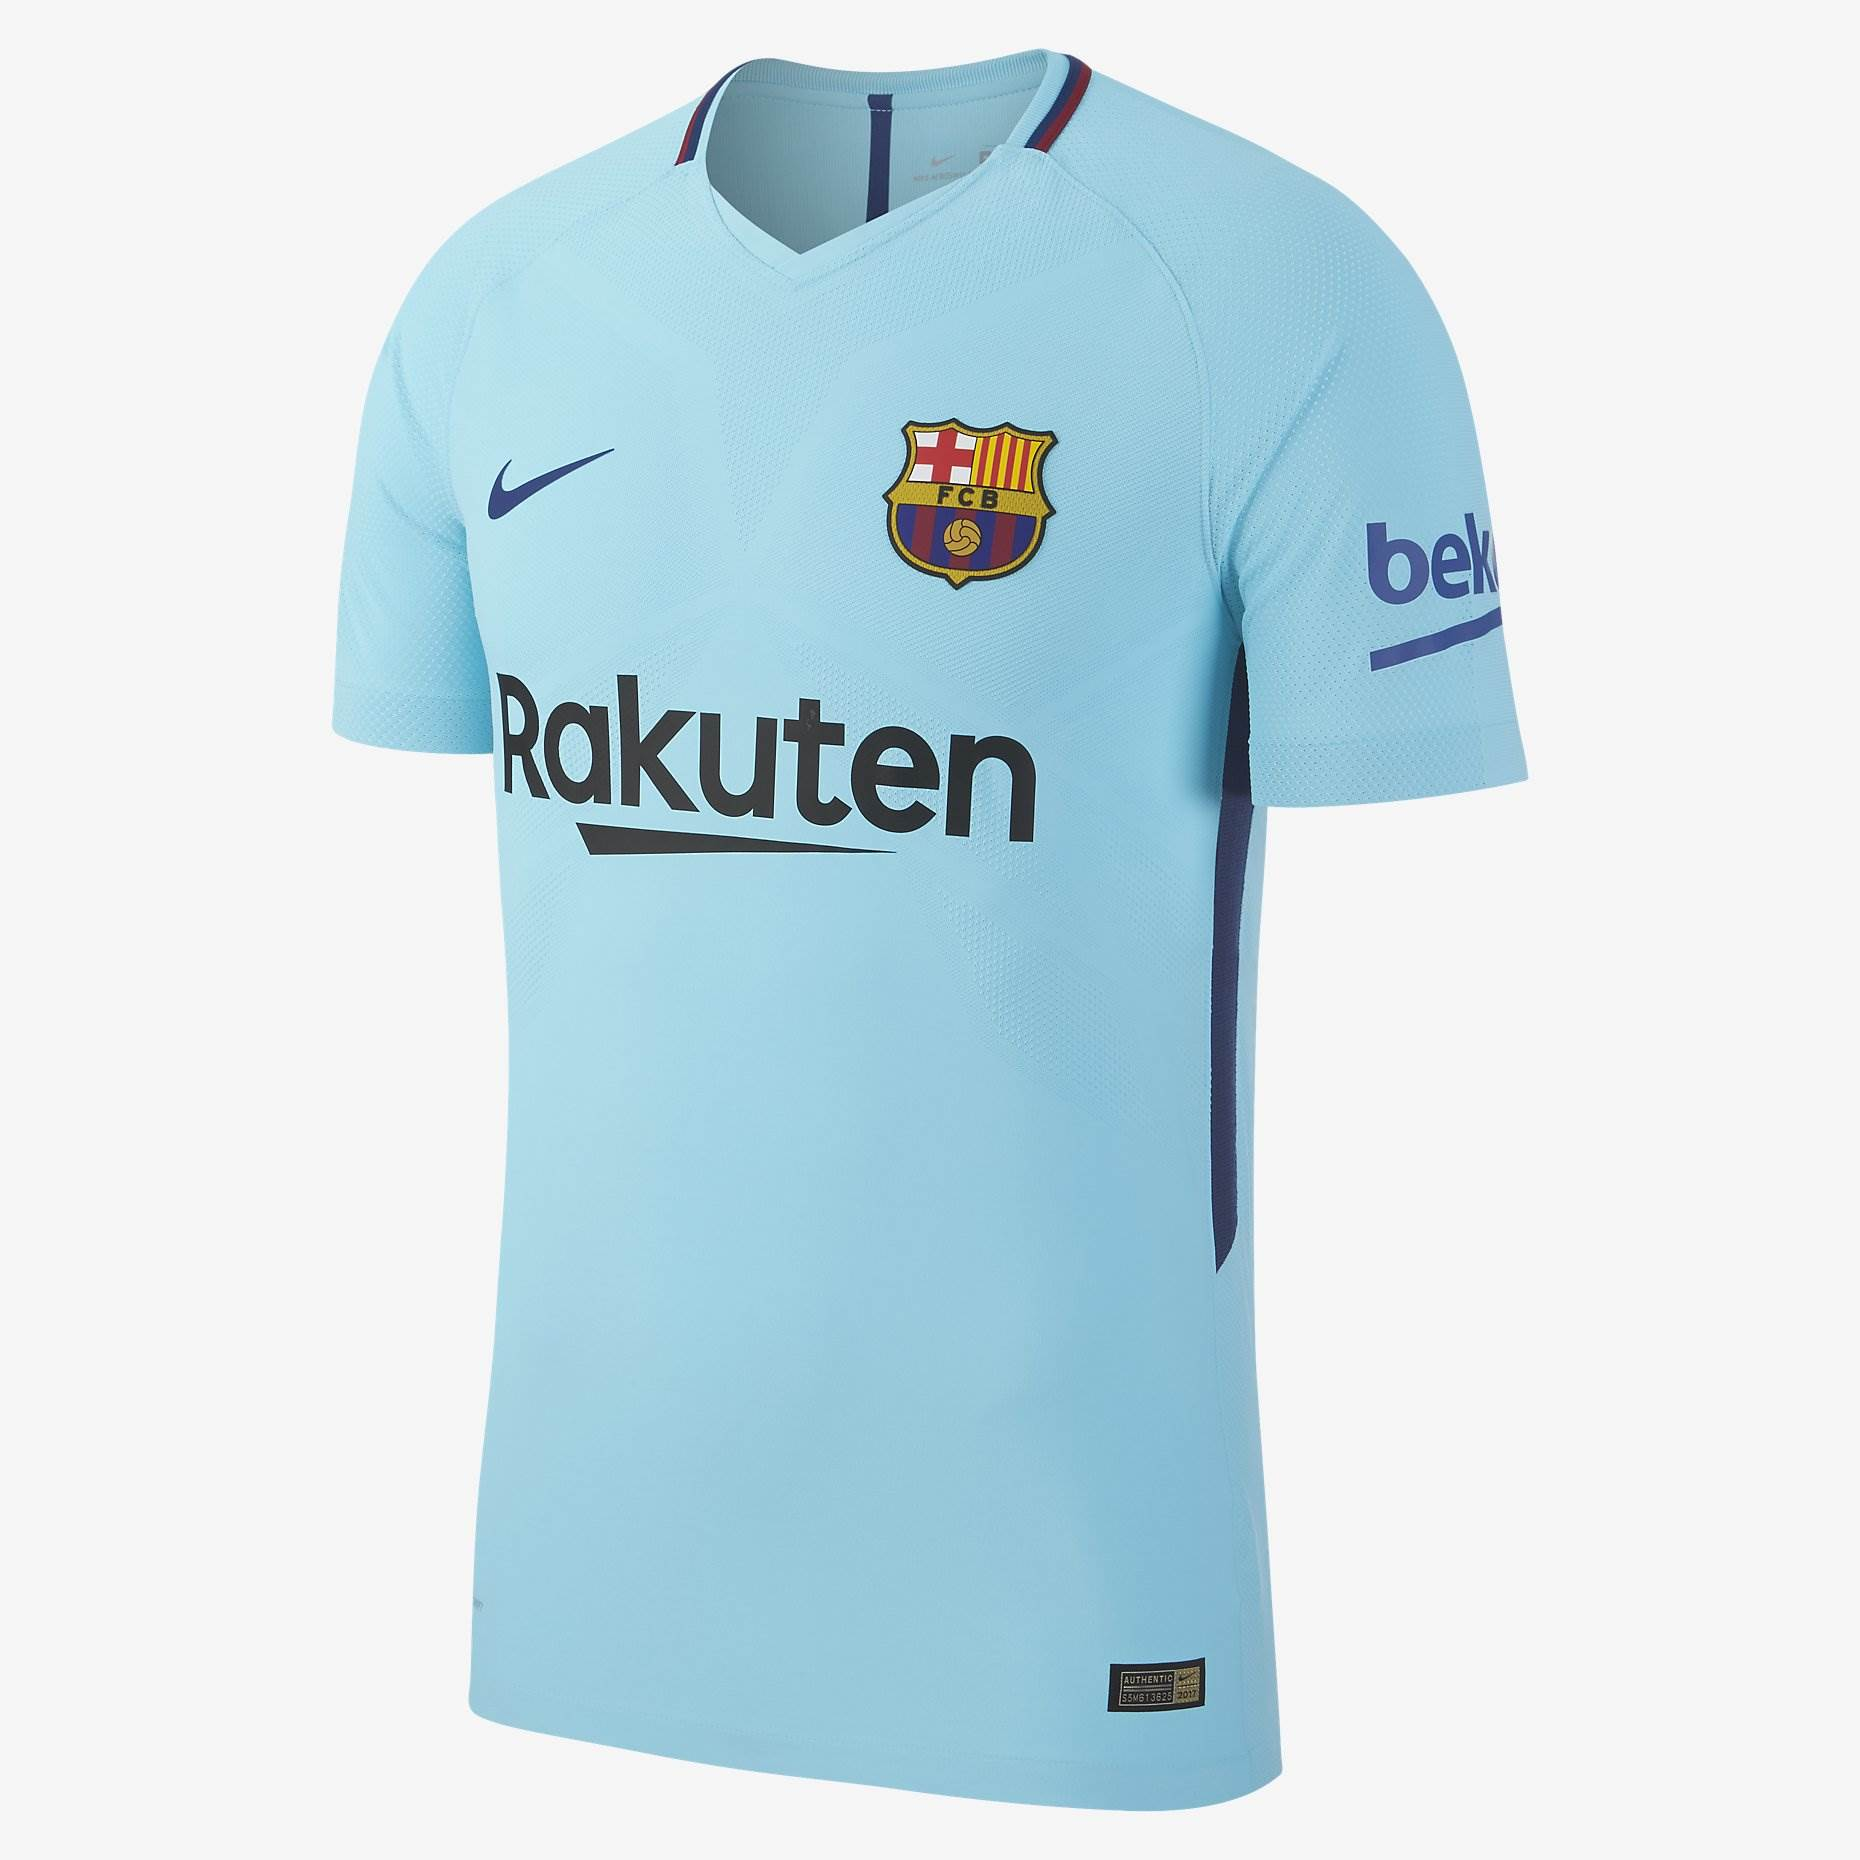 d73691909c2 Gallery  FC Barcelona s 2017-18 away kit unveiled - Style - FTBL Life